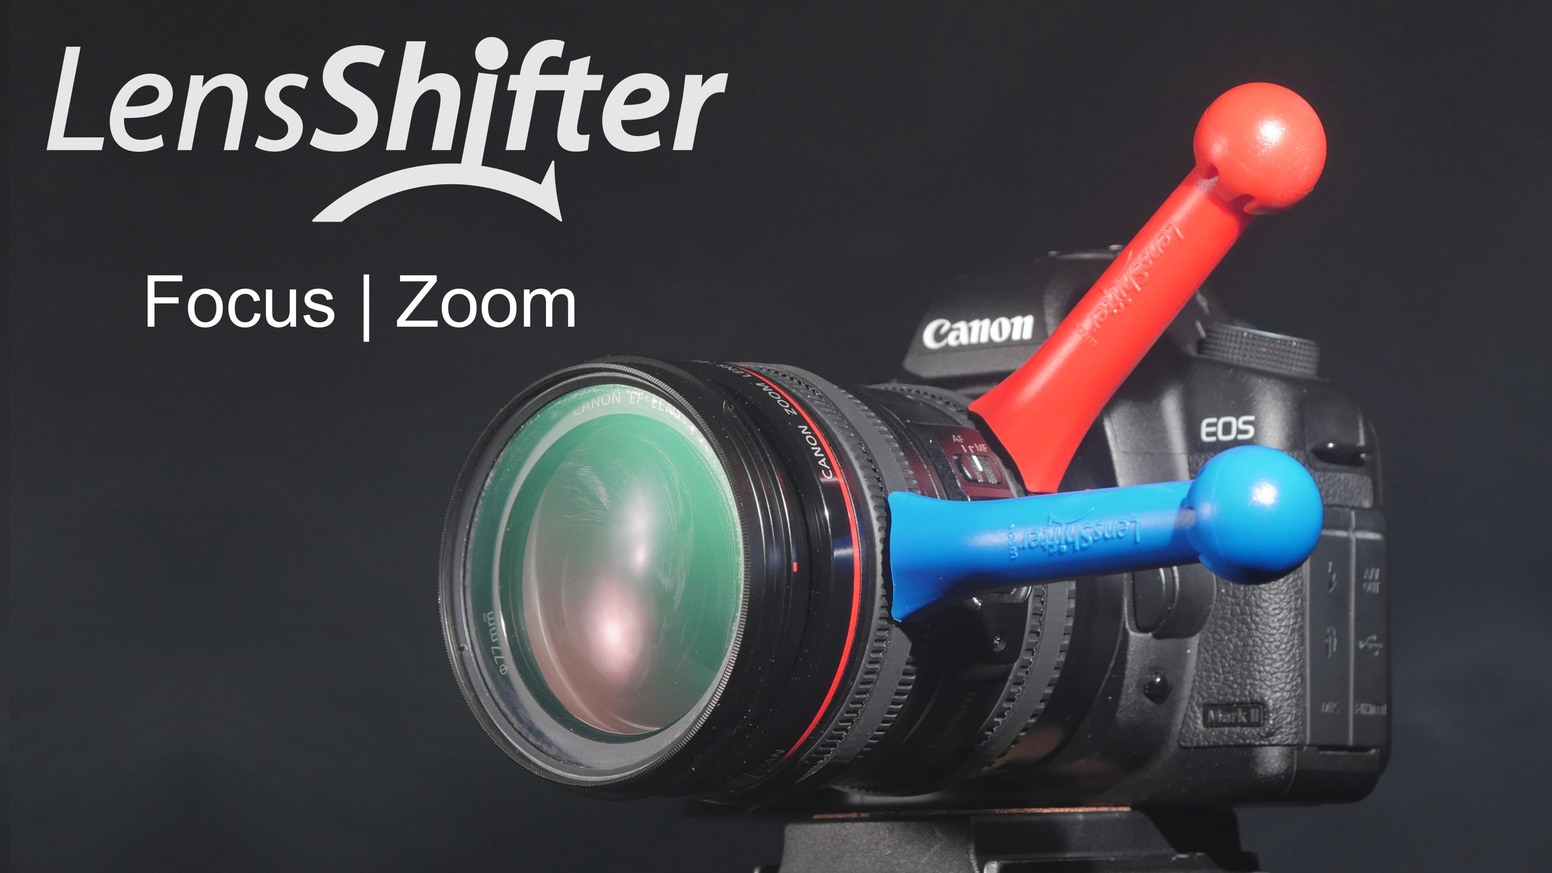 Get Finer Focus & Zoom Faster with LensShifter's Camera Lens Grip! Perfect for photography and video.